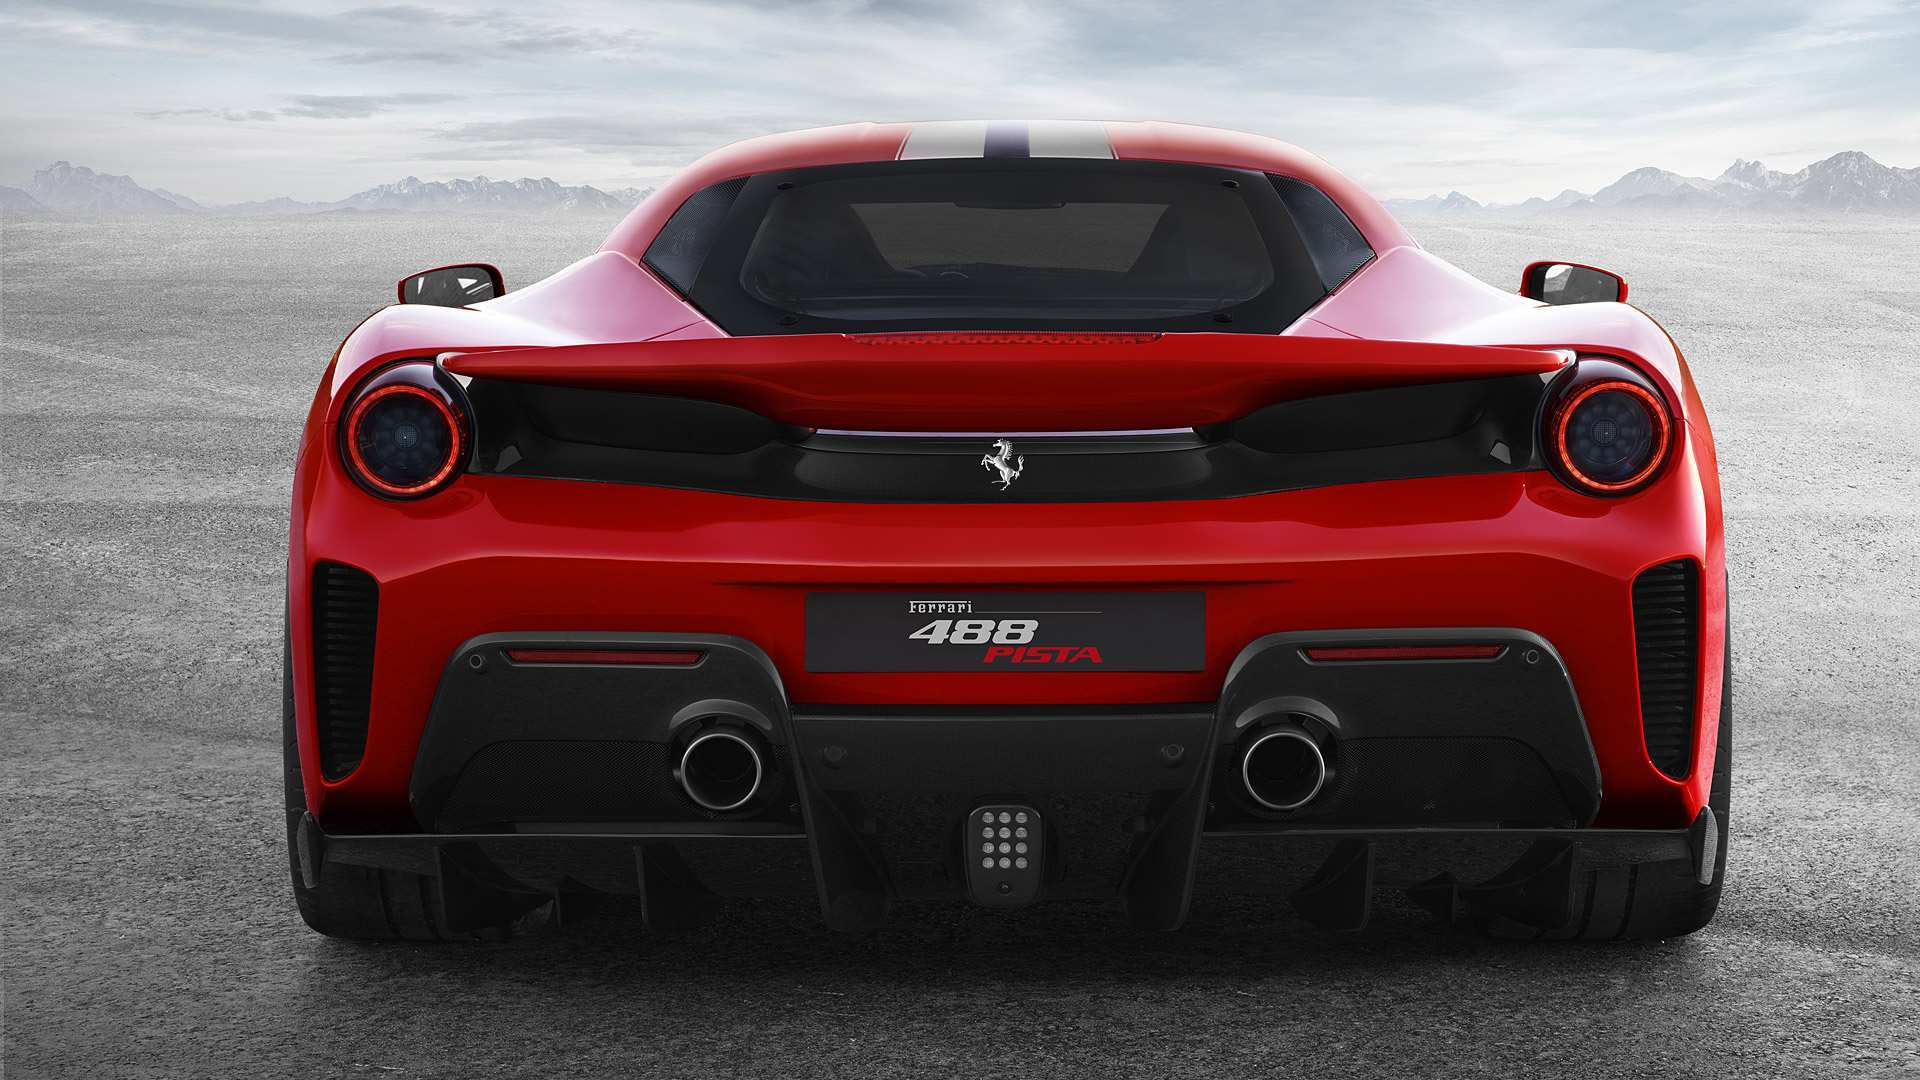 95 Best Ferrari Full 2019 Configurations